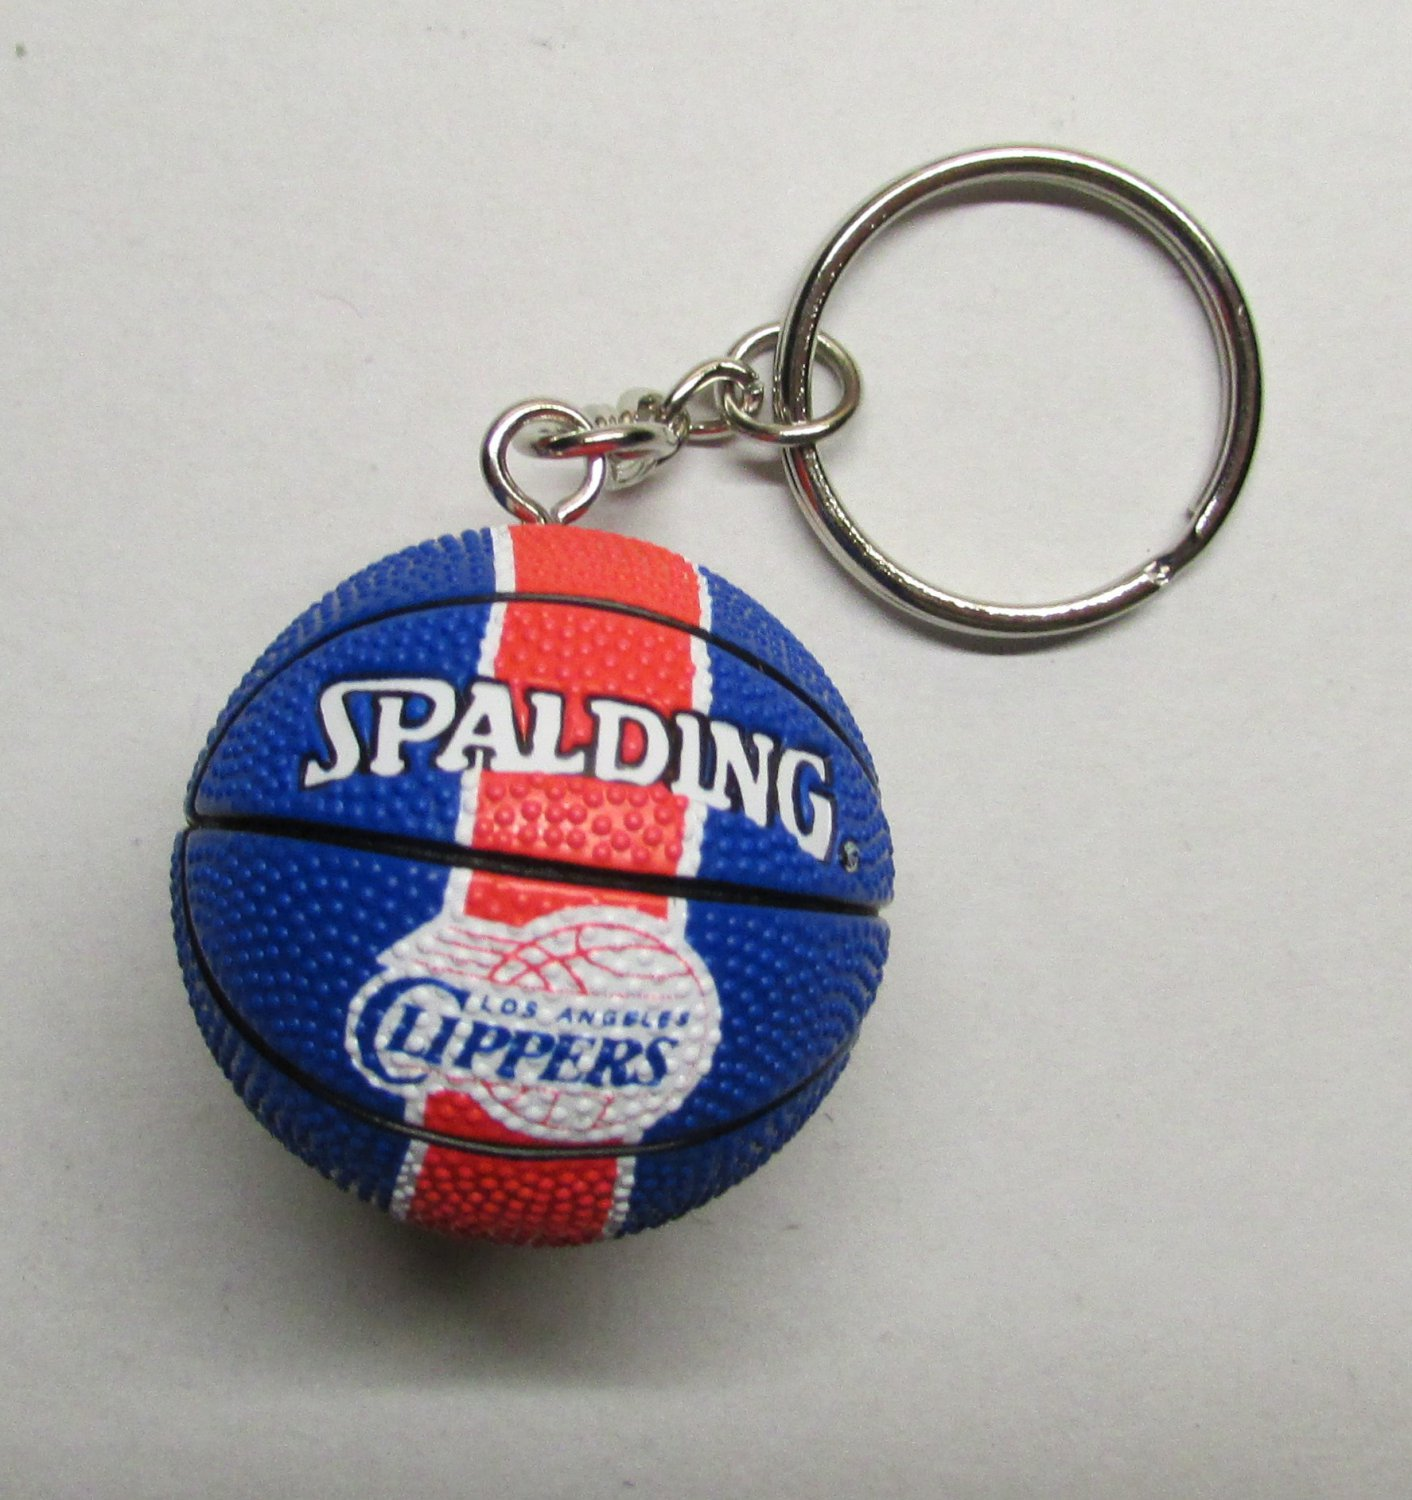 NBA Basketball Los Angeles CLIPPERS Spalding Ball KEY CHAIN Ring Keychain NEW